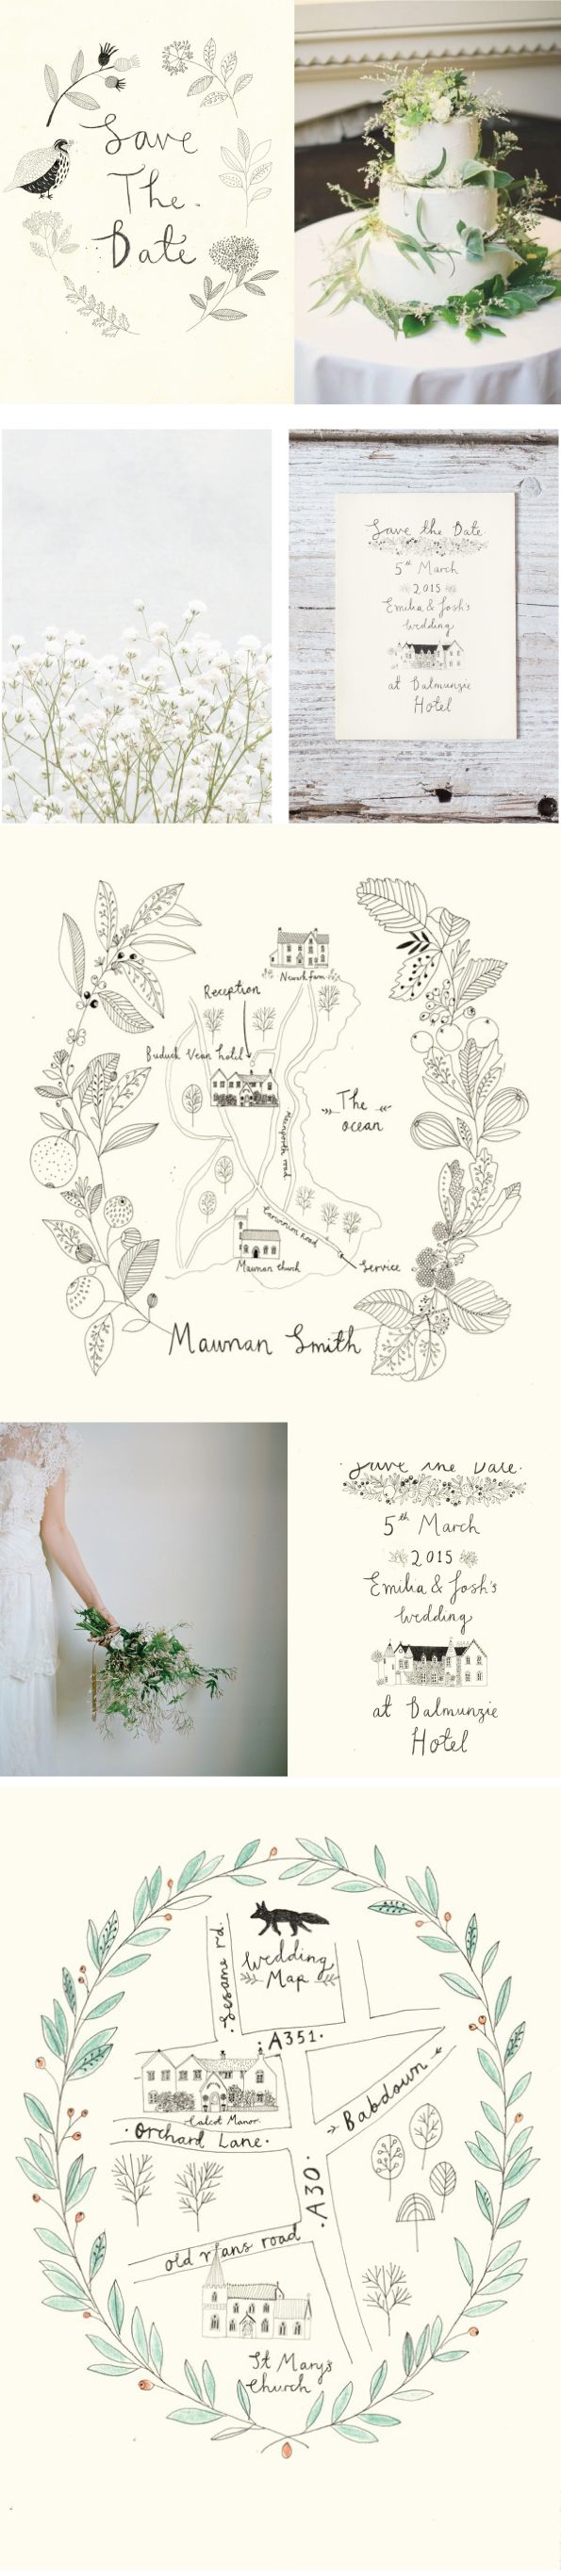 Katt Frank Wedding design. Love this idea. Include a map of www.weddingsatcrystalsprings.com